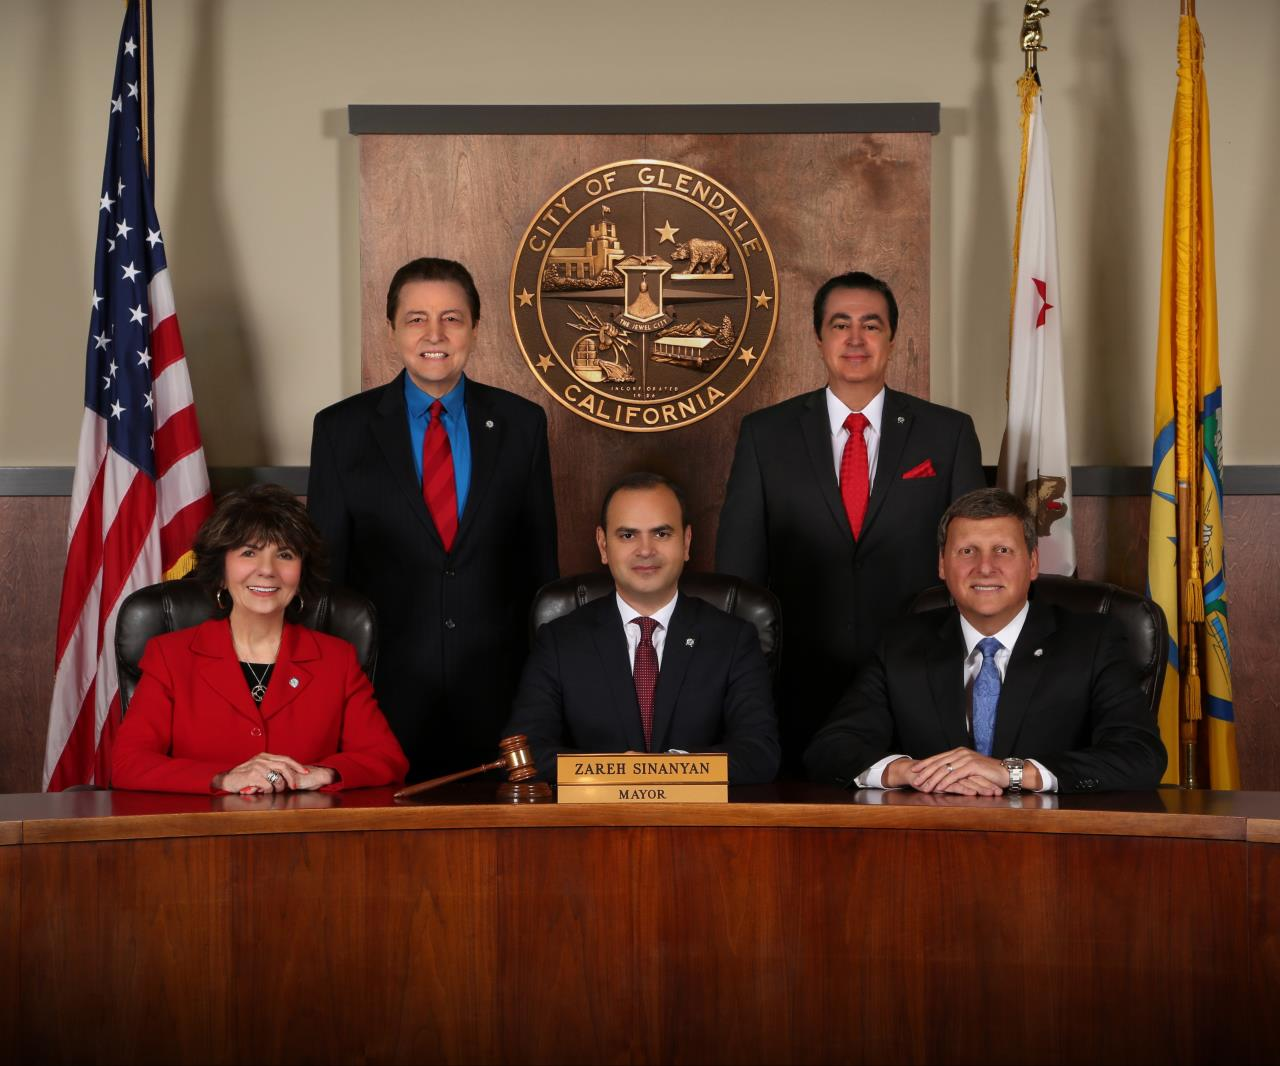 2018 - Glendale City Council